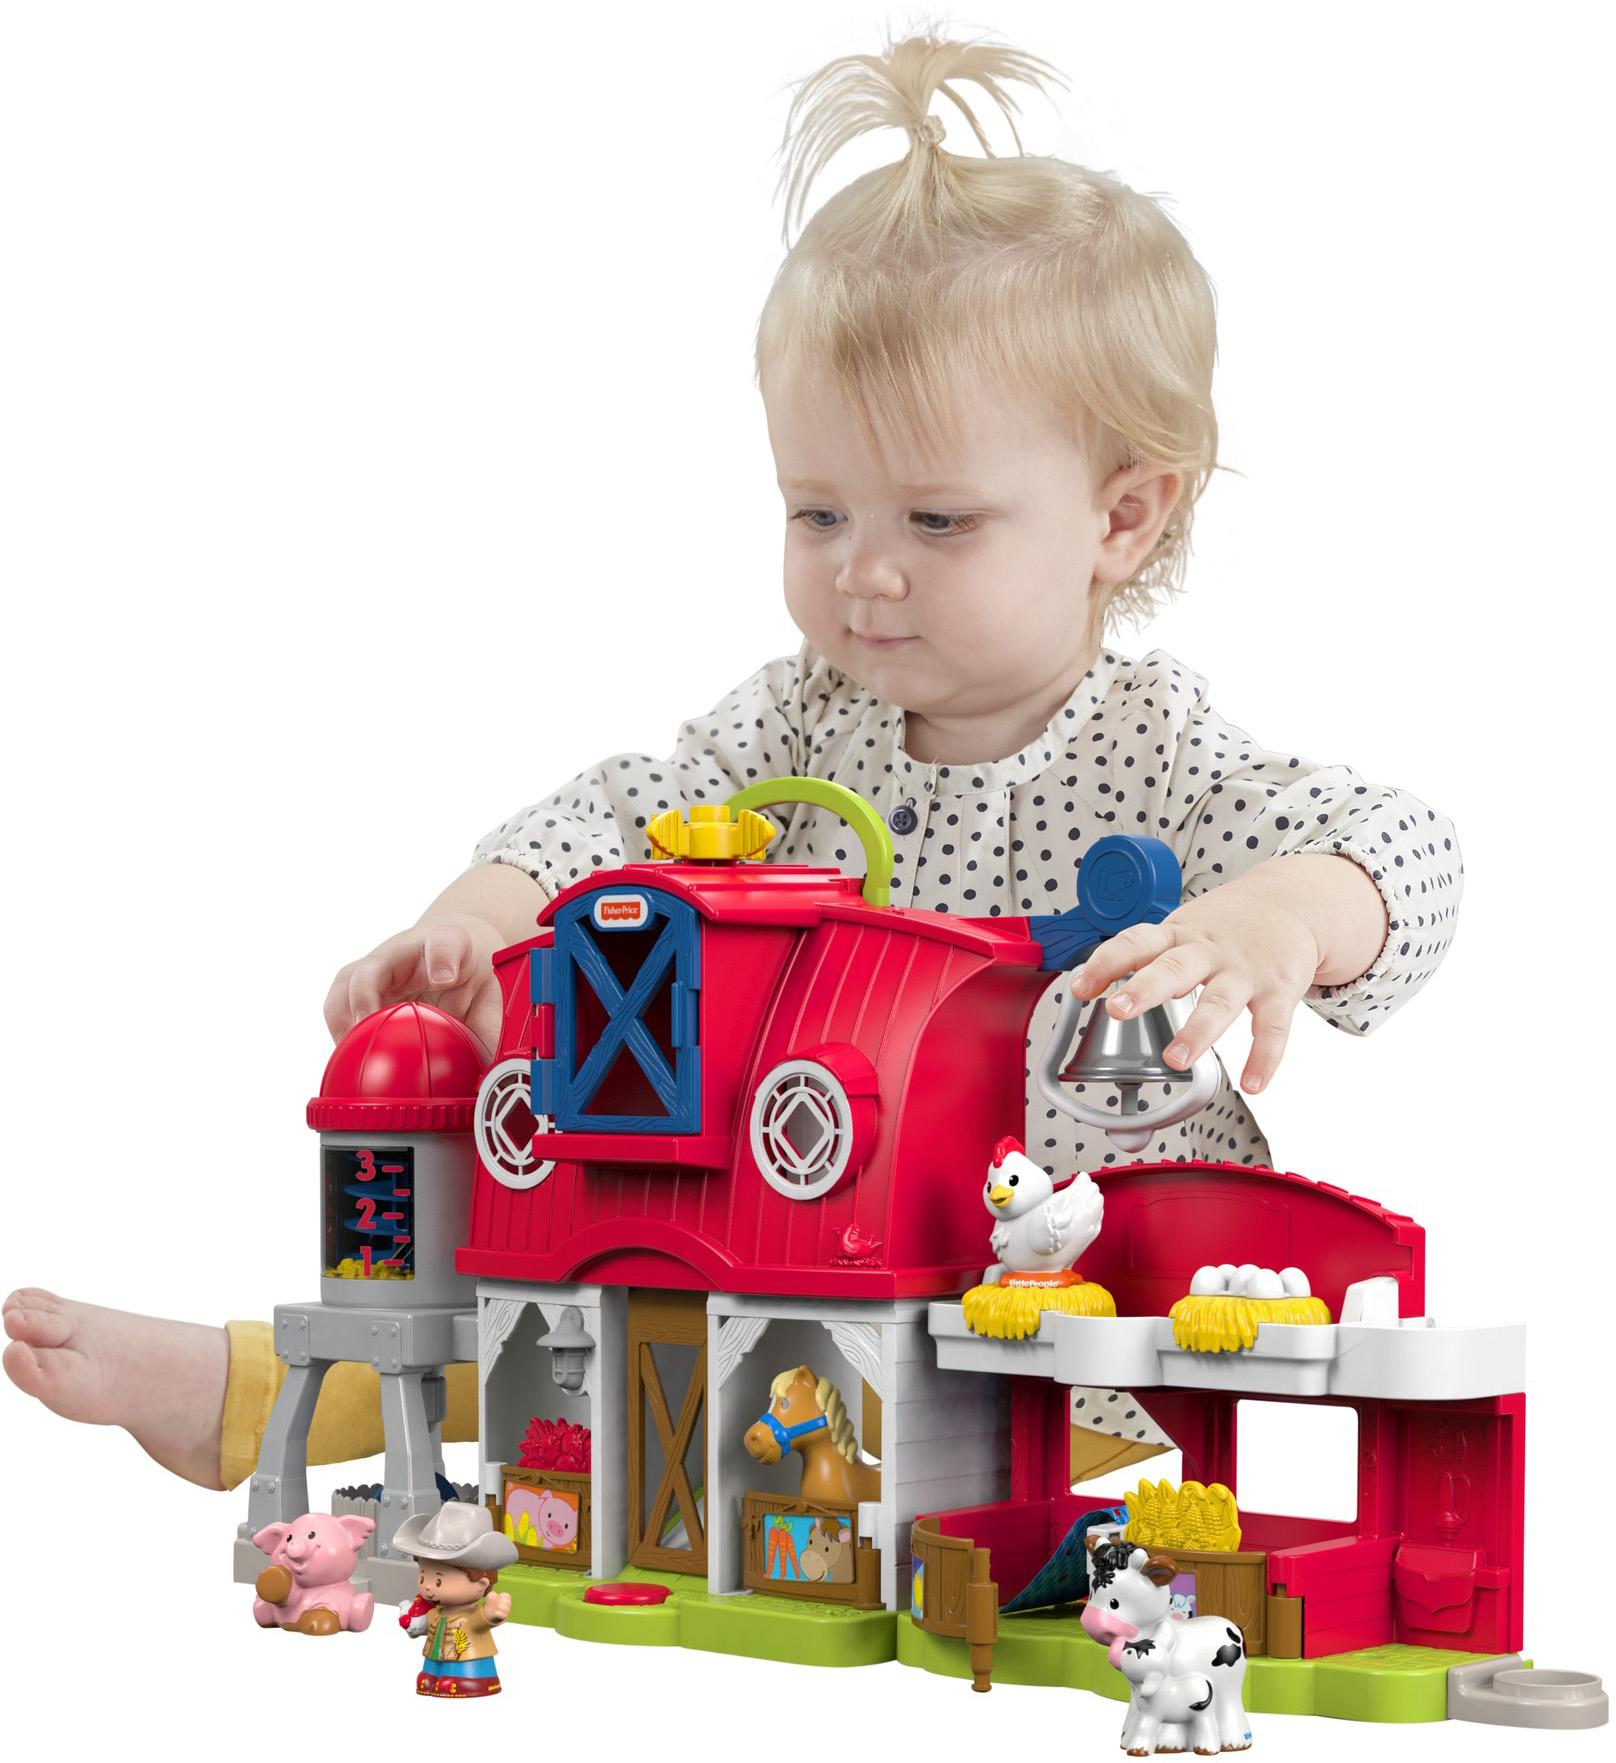 Toys For Little : Amazon fisher price little people caring for animals